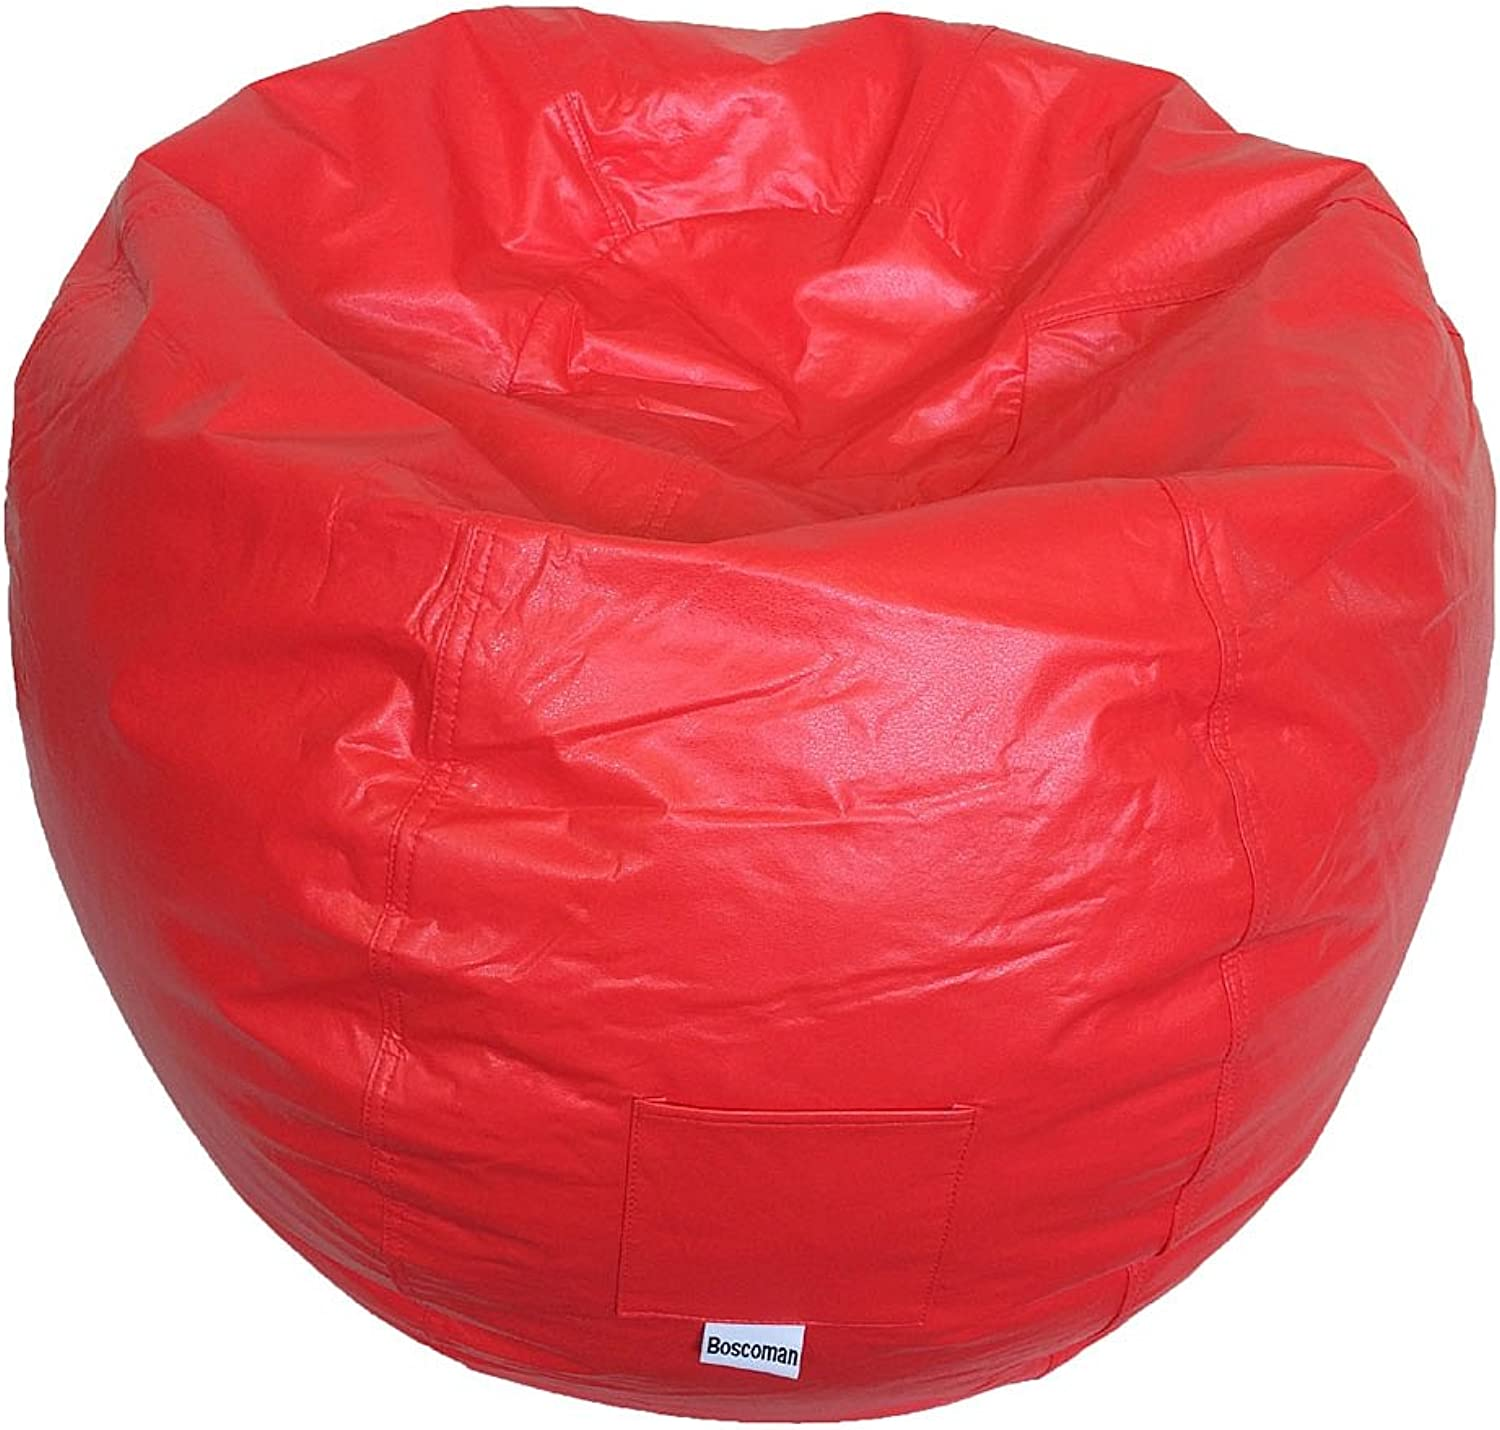 Boscoman - Adult Round Vinyl With Pocket Beanbag Chair - Red Zinnia (BOX M)